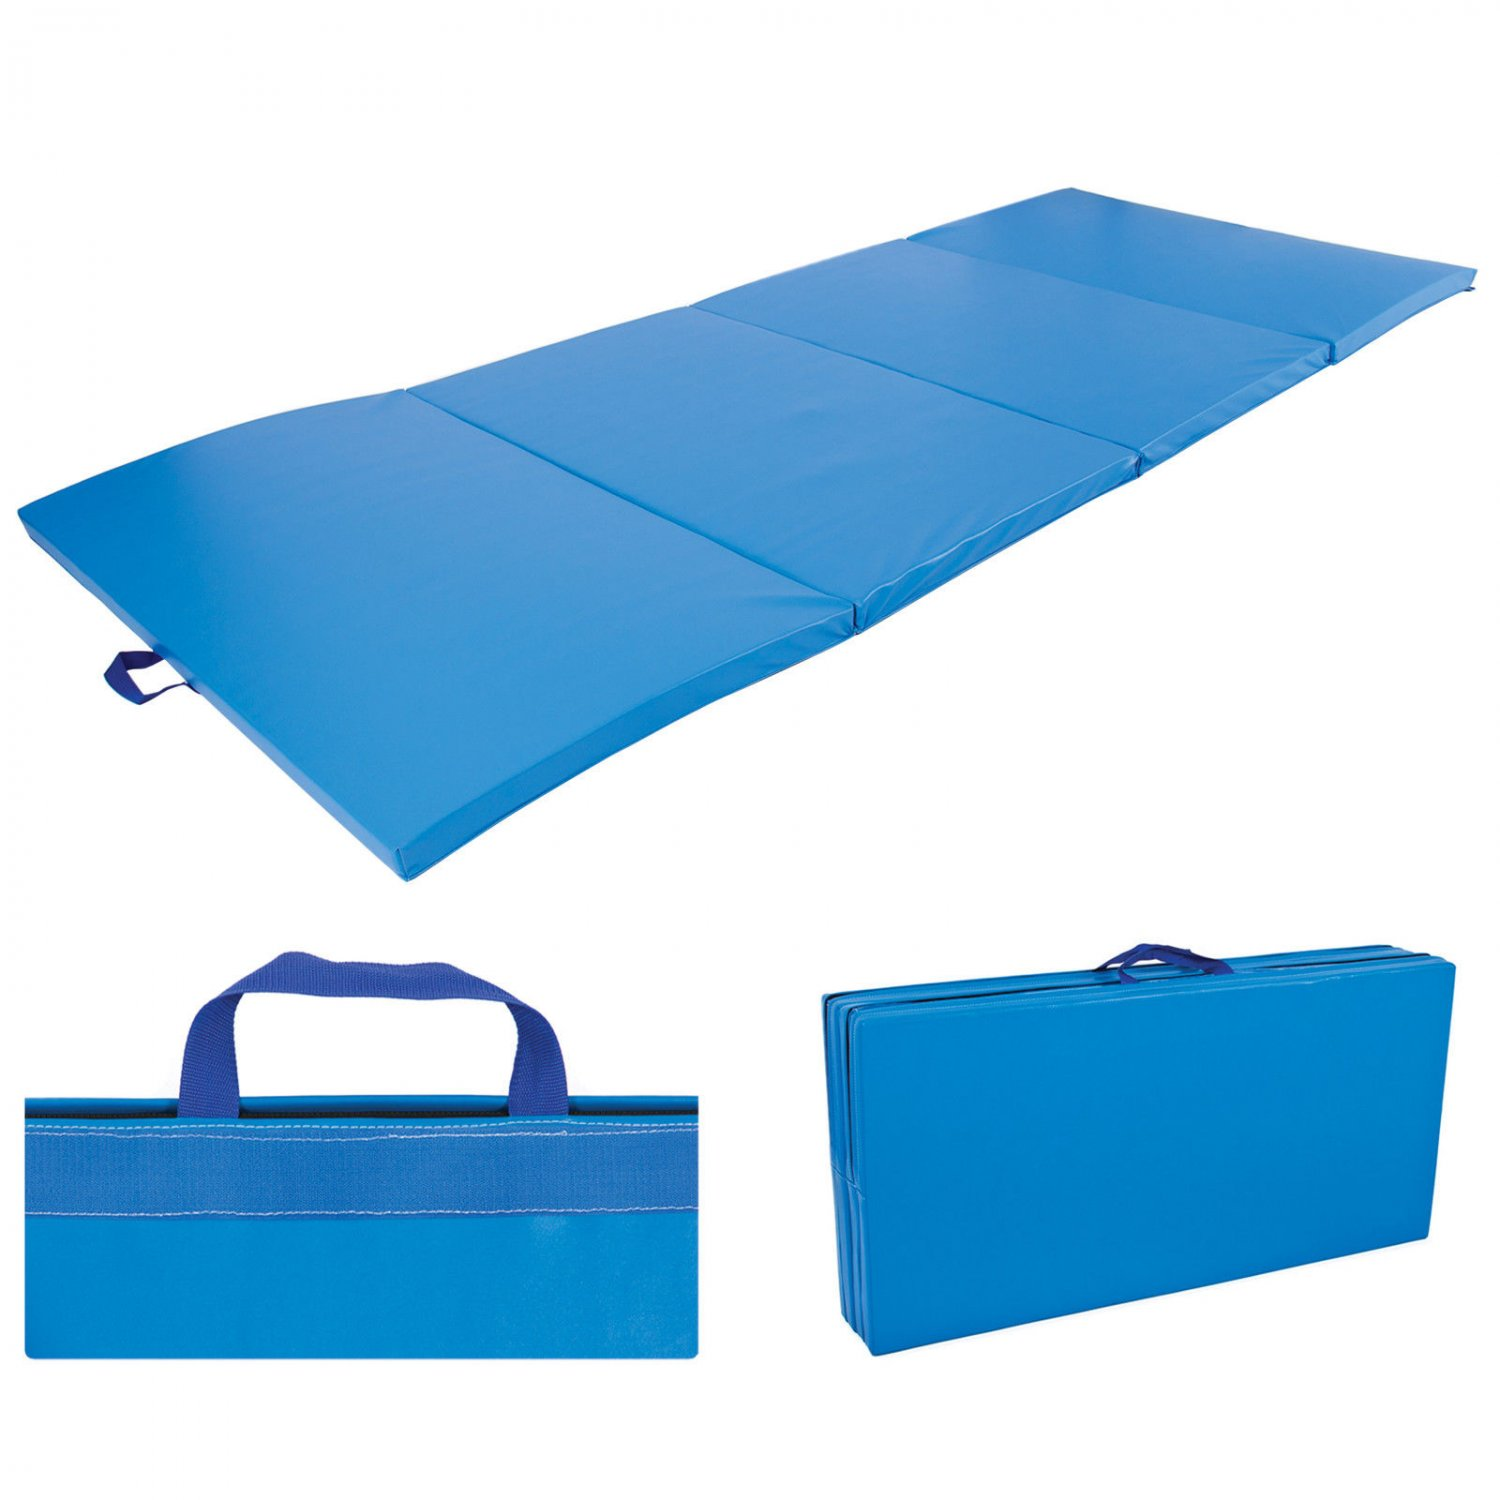 4 X10 X2 Gymnastics Gym Folding Exercise Aerobics Mats